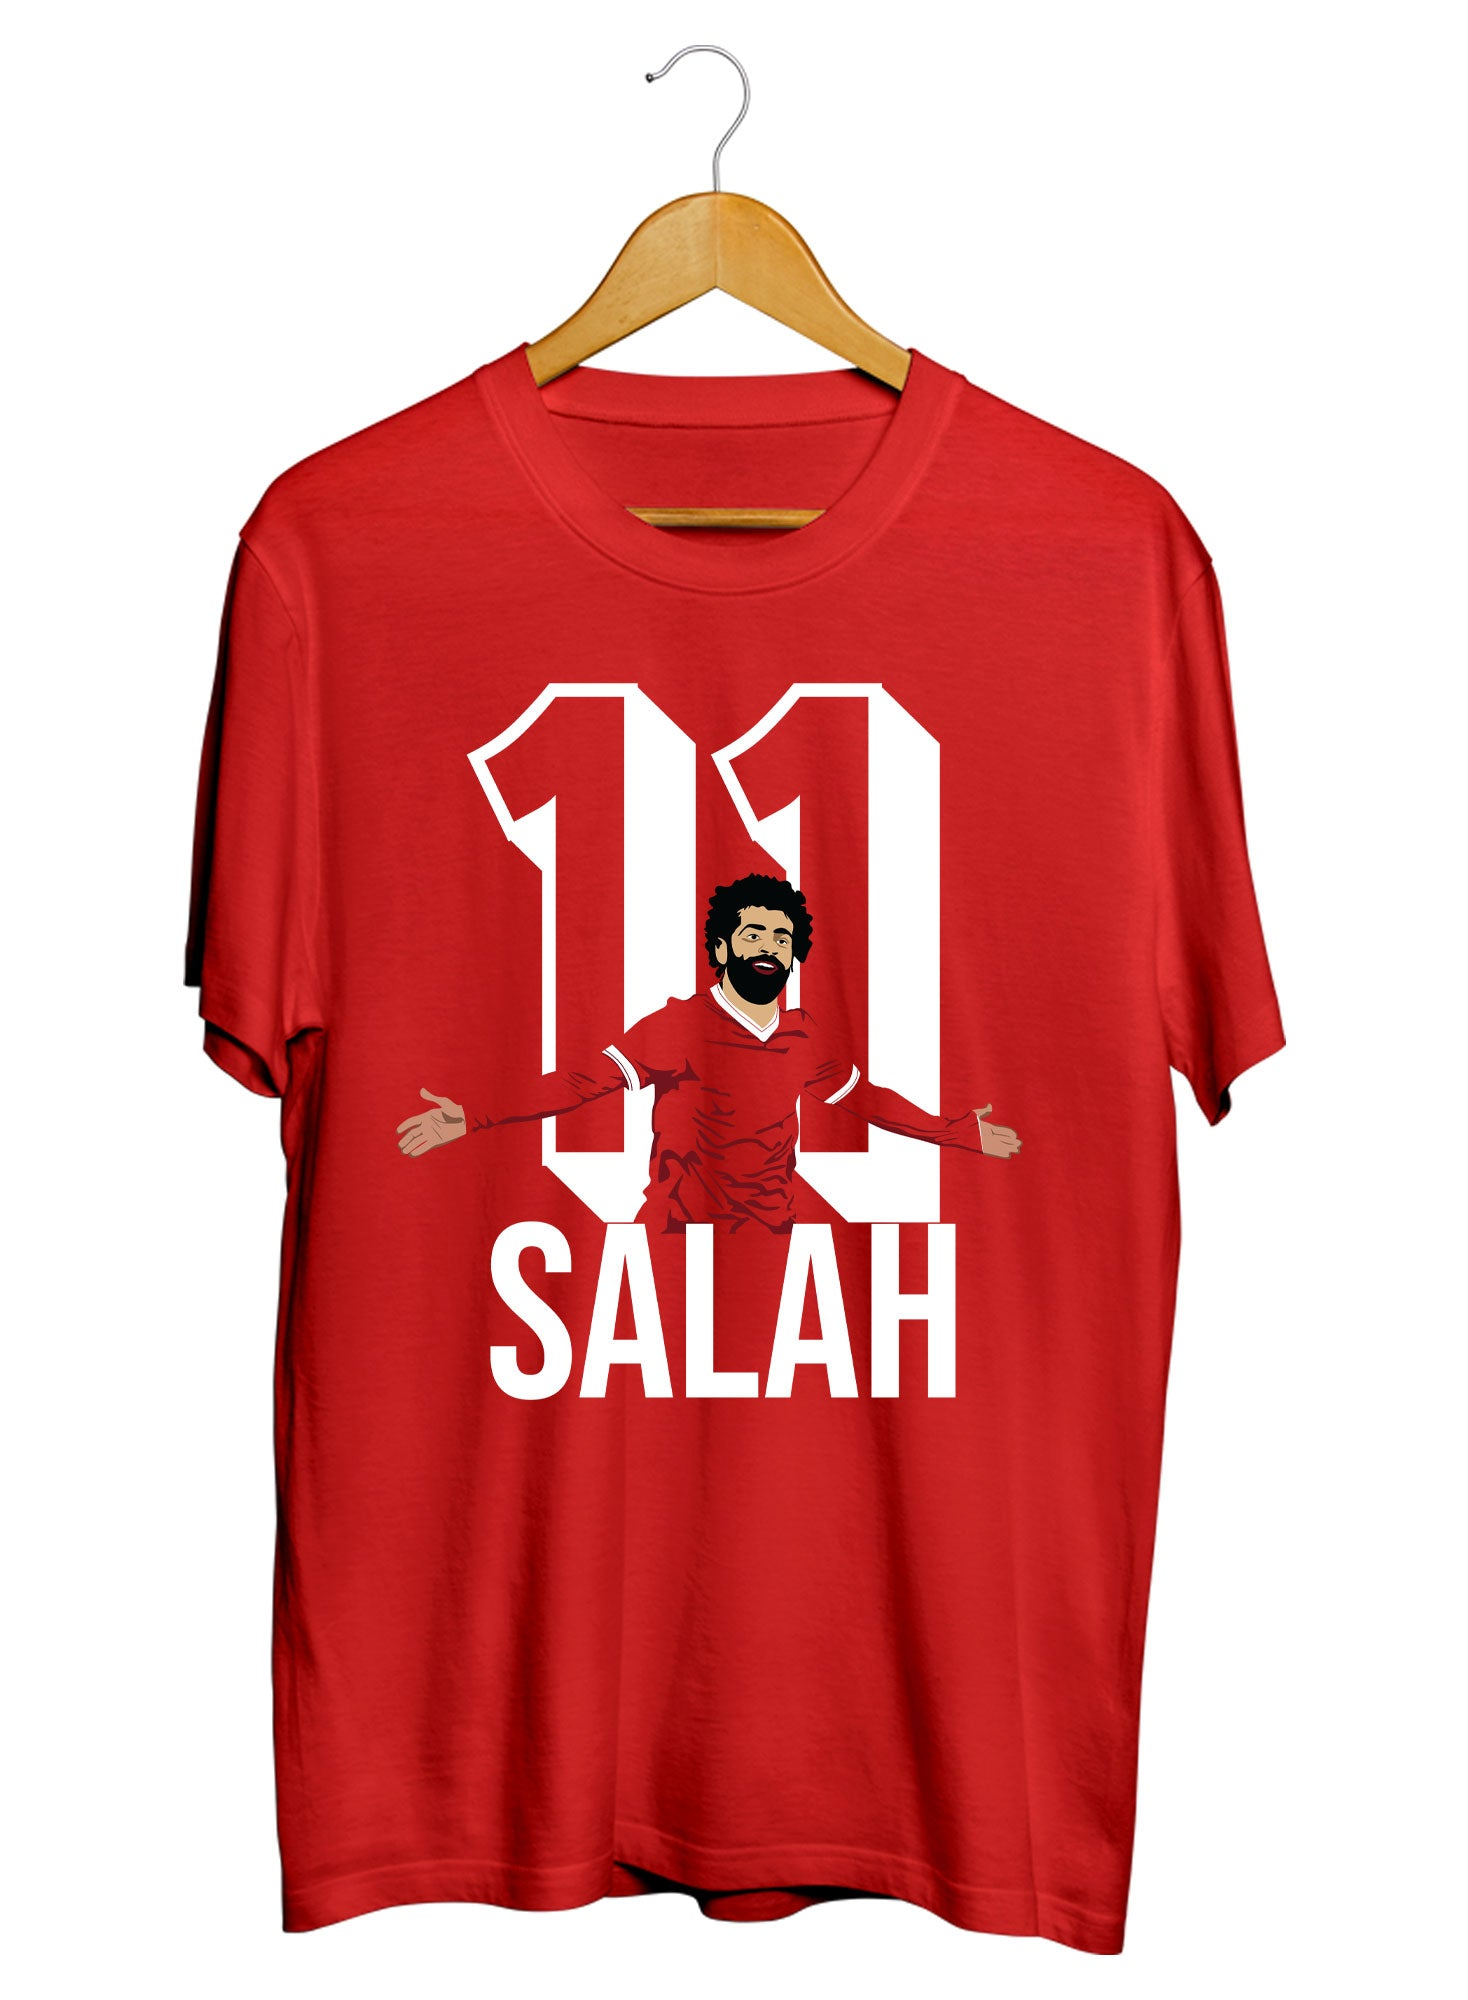 Salah Celebration T-shirts